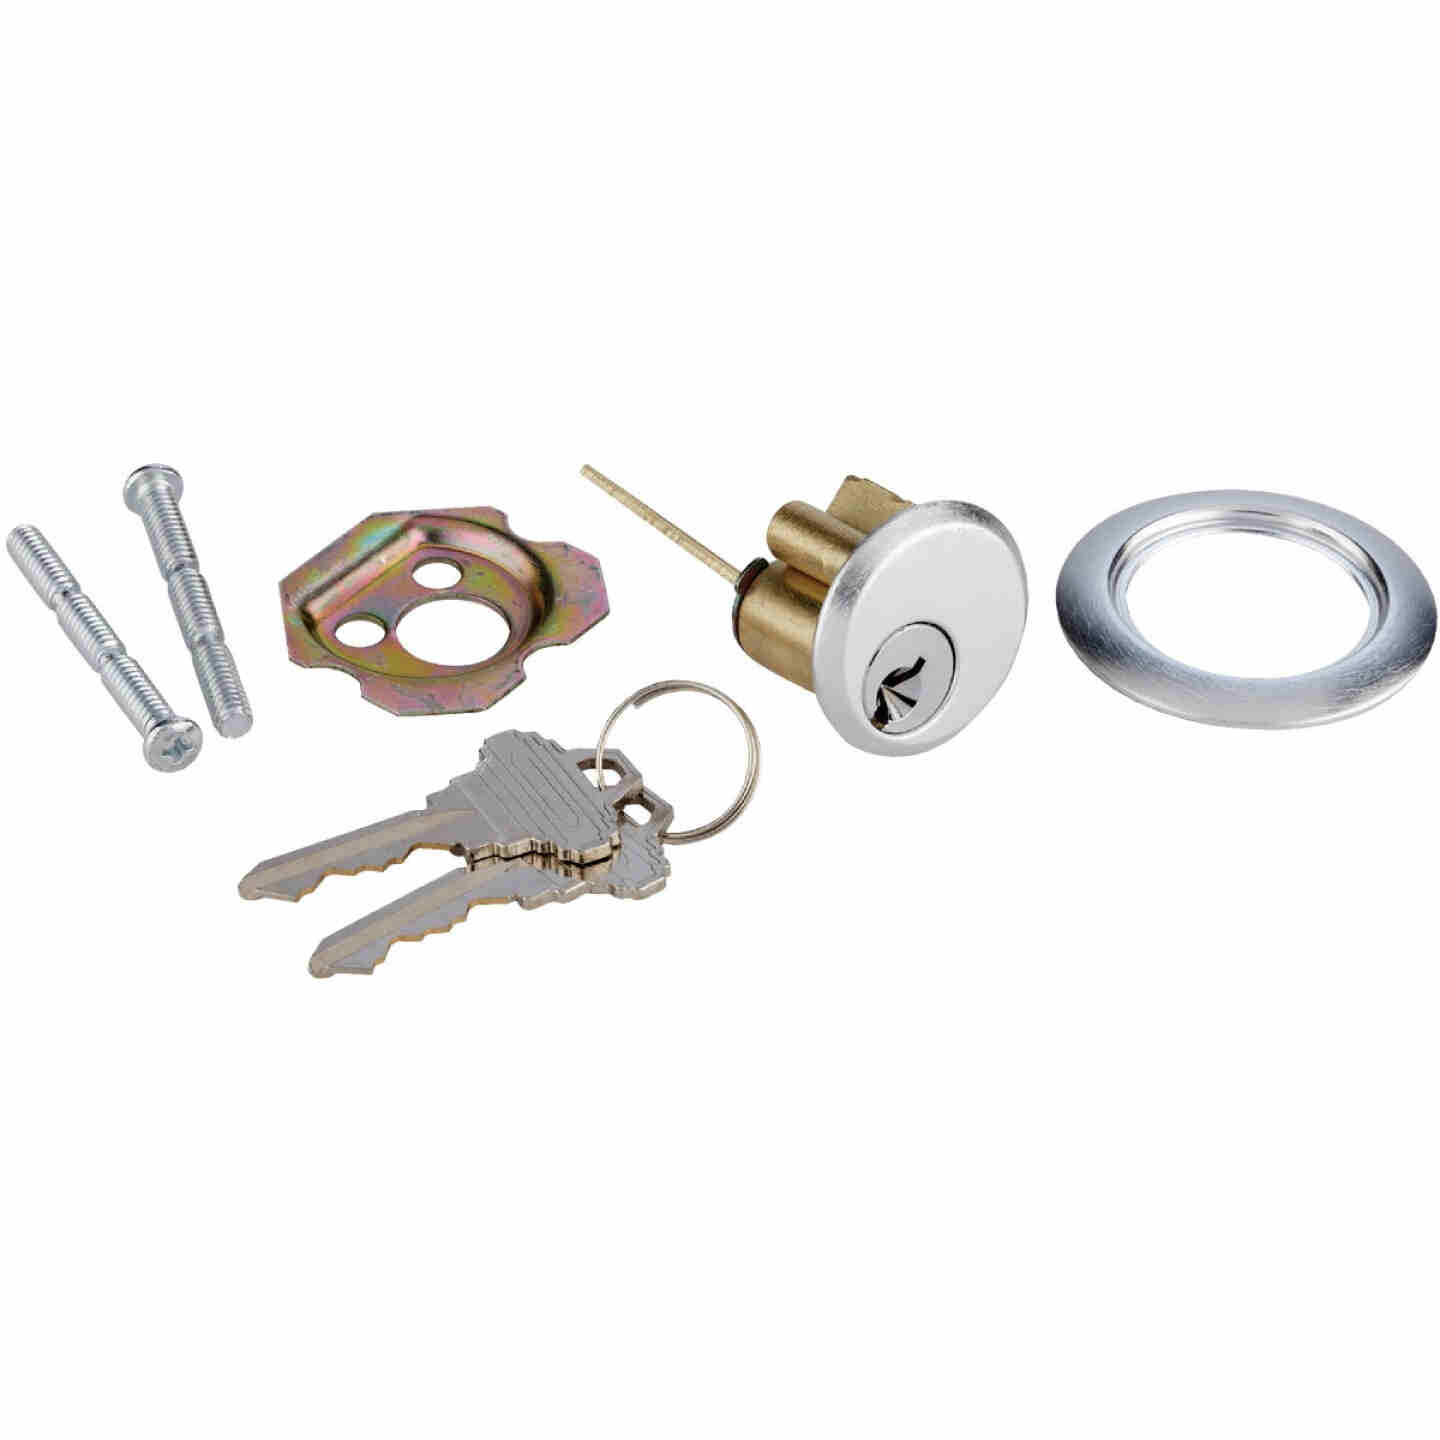 Prime-Line 5-Pin Brass Diecast Rim Cylinder Lock with Trim Ring Image 3